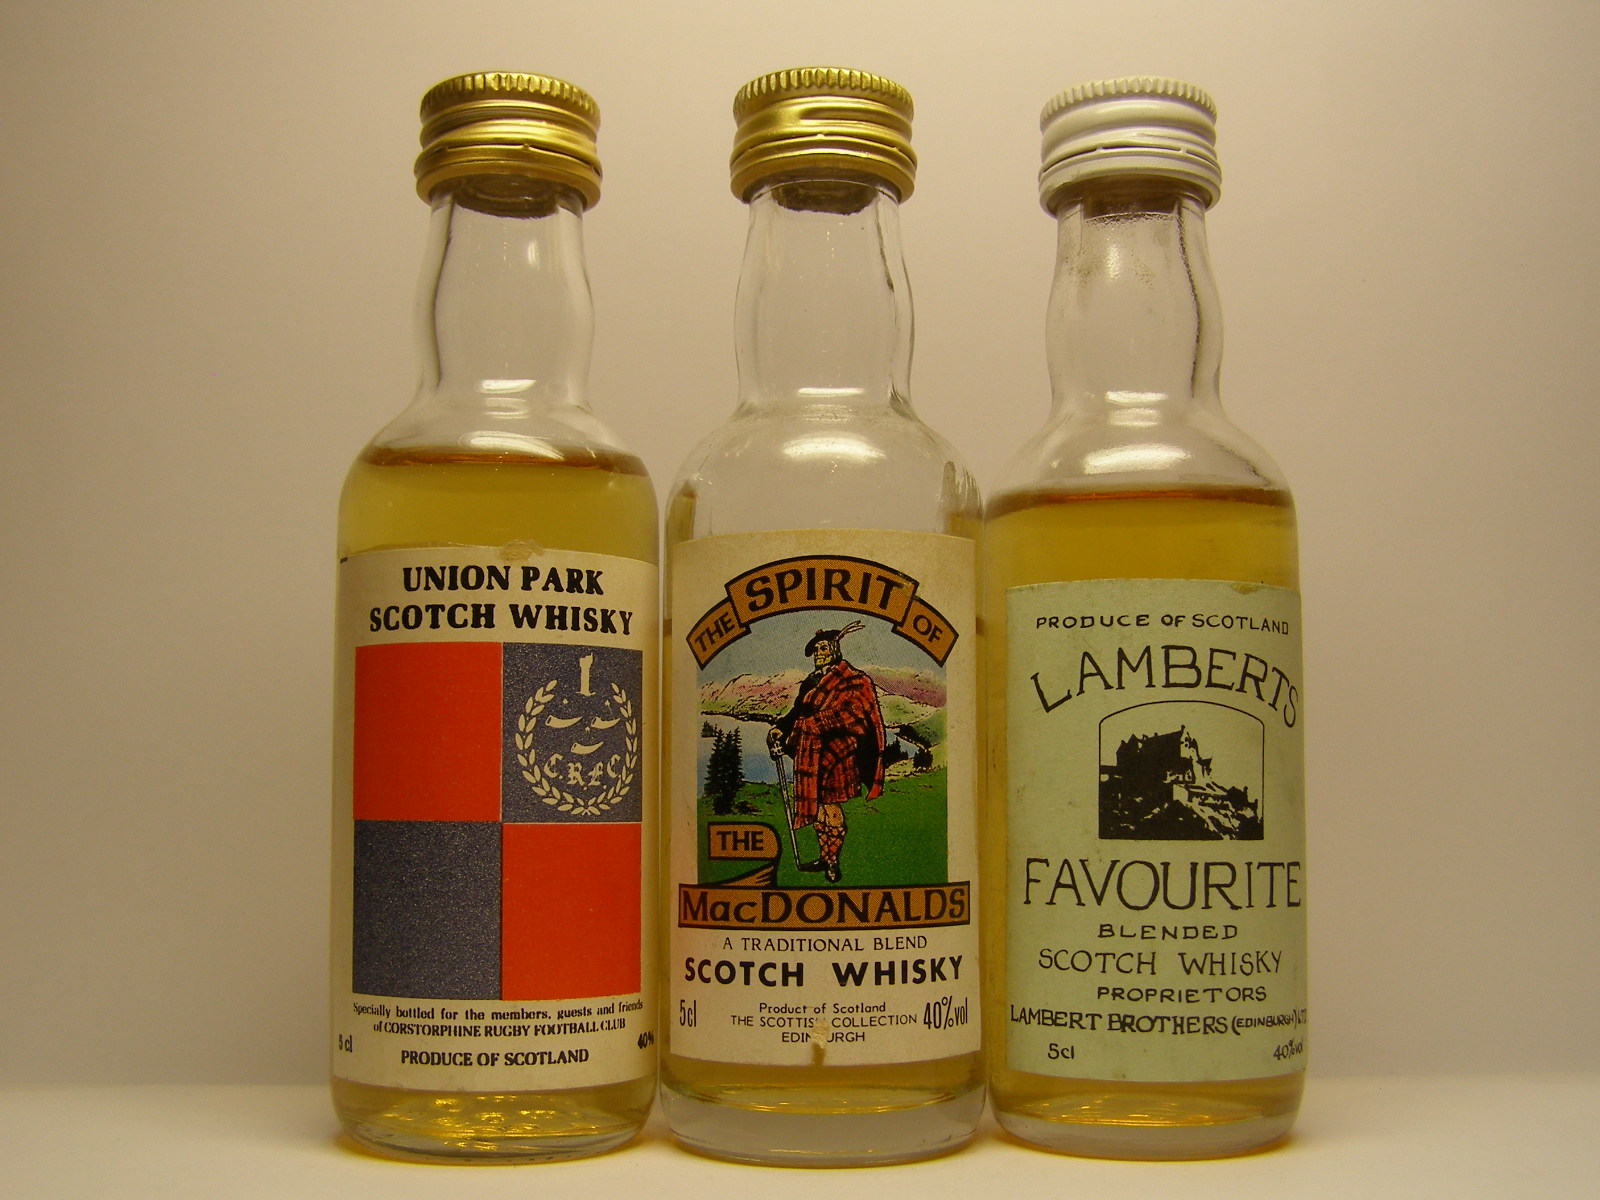 UNION PARK SCOTCH WHISKY , The SPIRIT of MACDONALD , LAMBERTS FAVOURITE